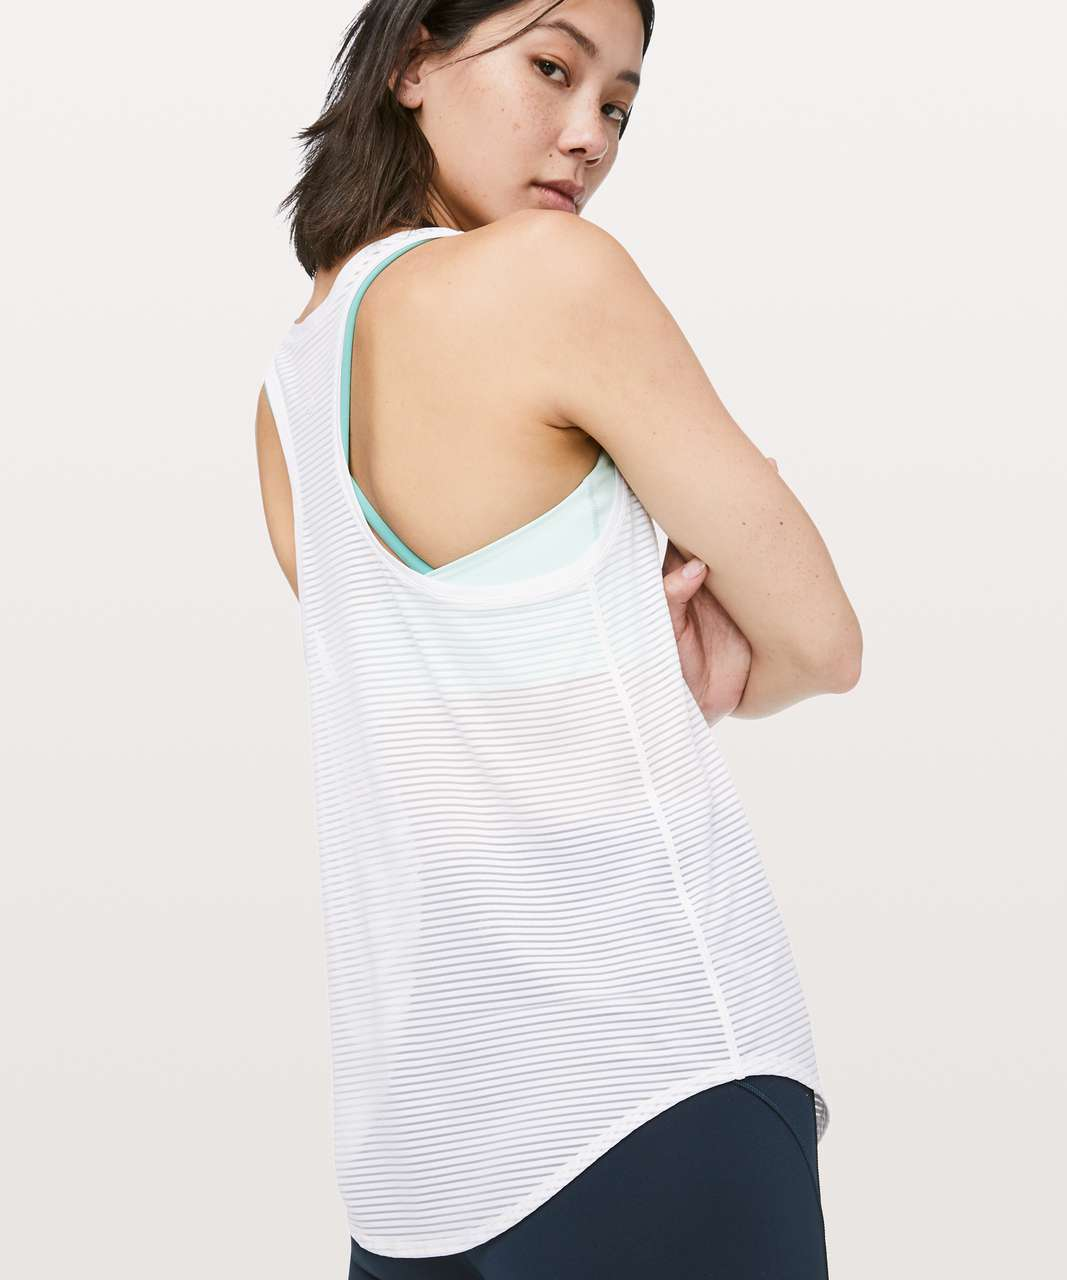 Lululemon All Love Tank *Striped Mesh - White